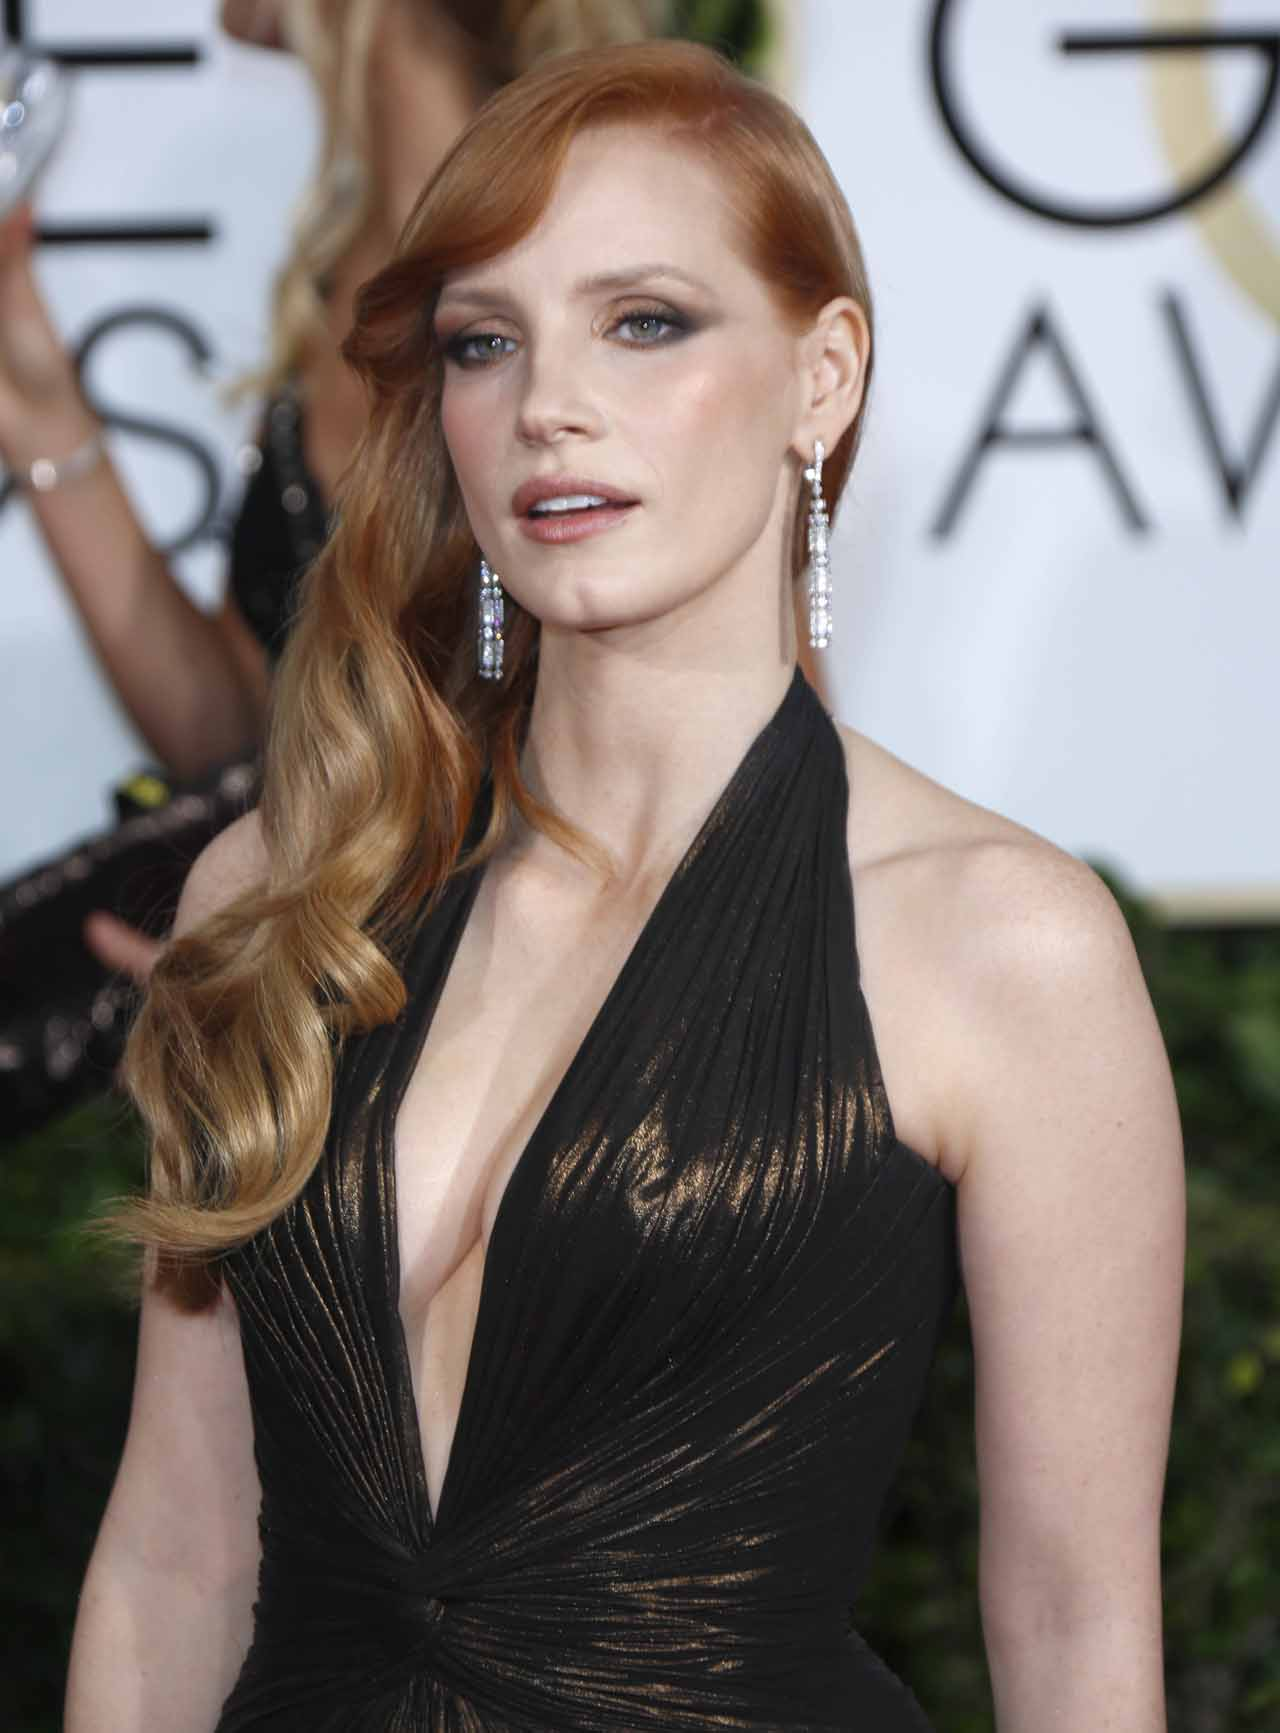 72nd Annual Golden Globe Awards at The Beverly Hilton Hotel - Arrivals Featuring: Jessica Chastain Where: Los Angeles, California, United States When: 11 Jan 2015 Credit: WENN.com **Not available for publication in Germany**